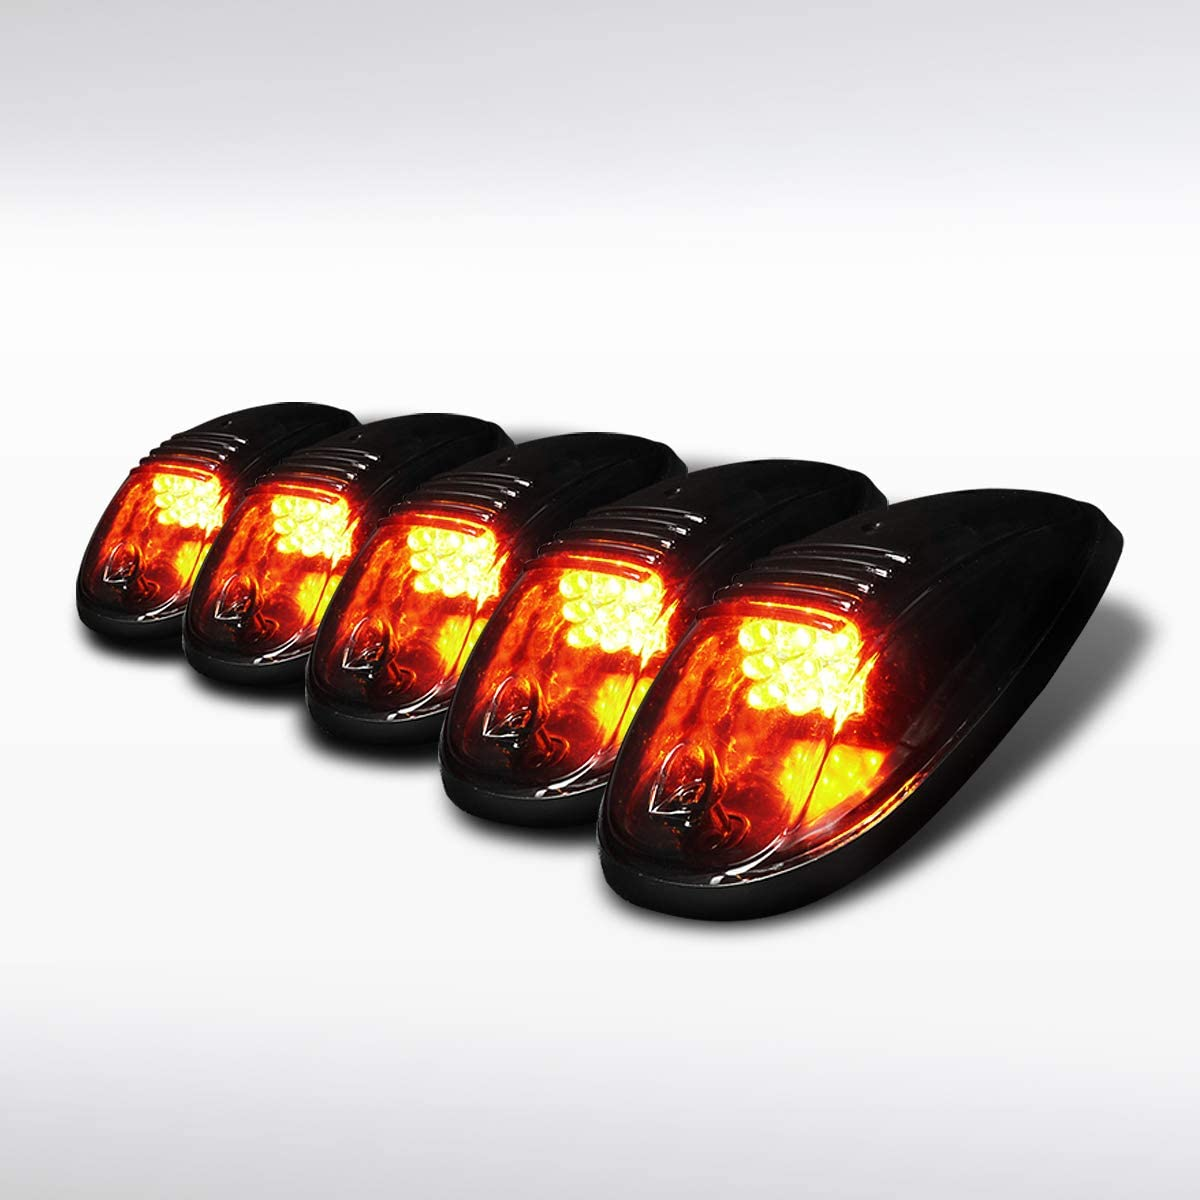 Autozensation For [5pc] SUV Truck Jeep Van Smoke LED Cab Roof Fog Marker Lights w/Switch Wire